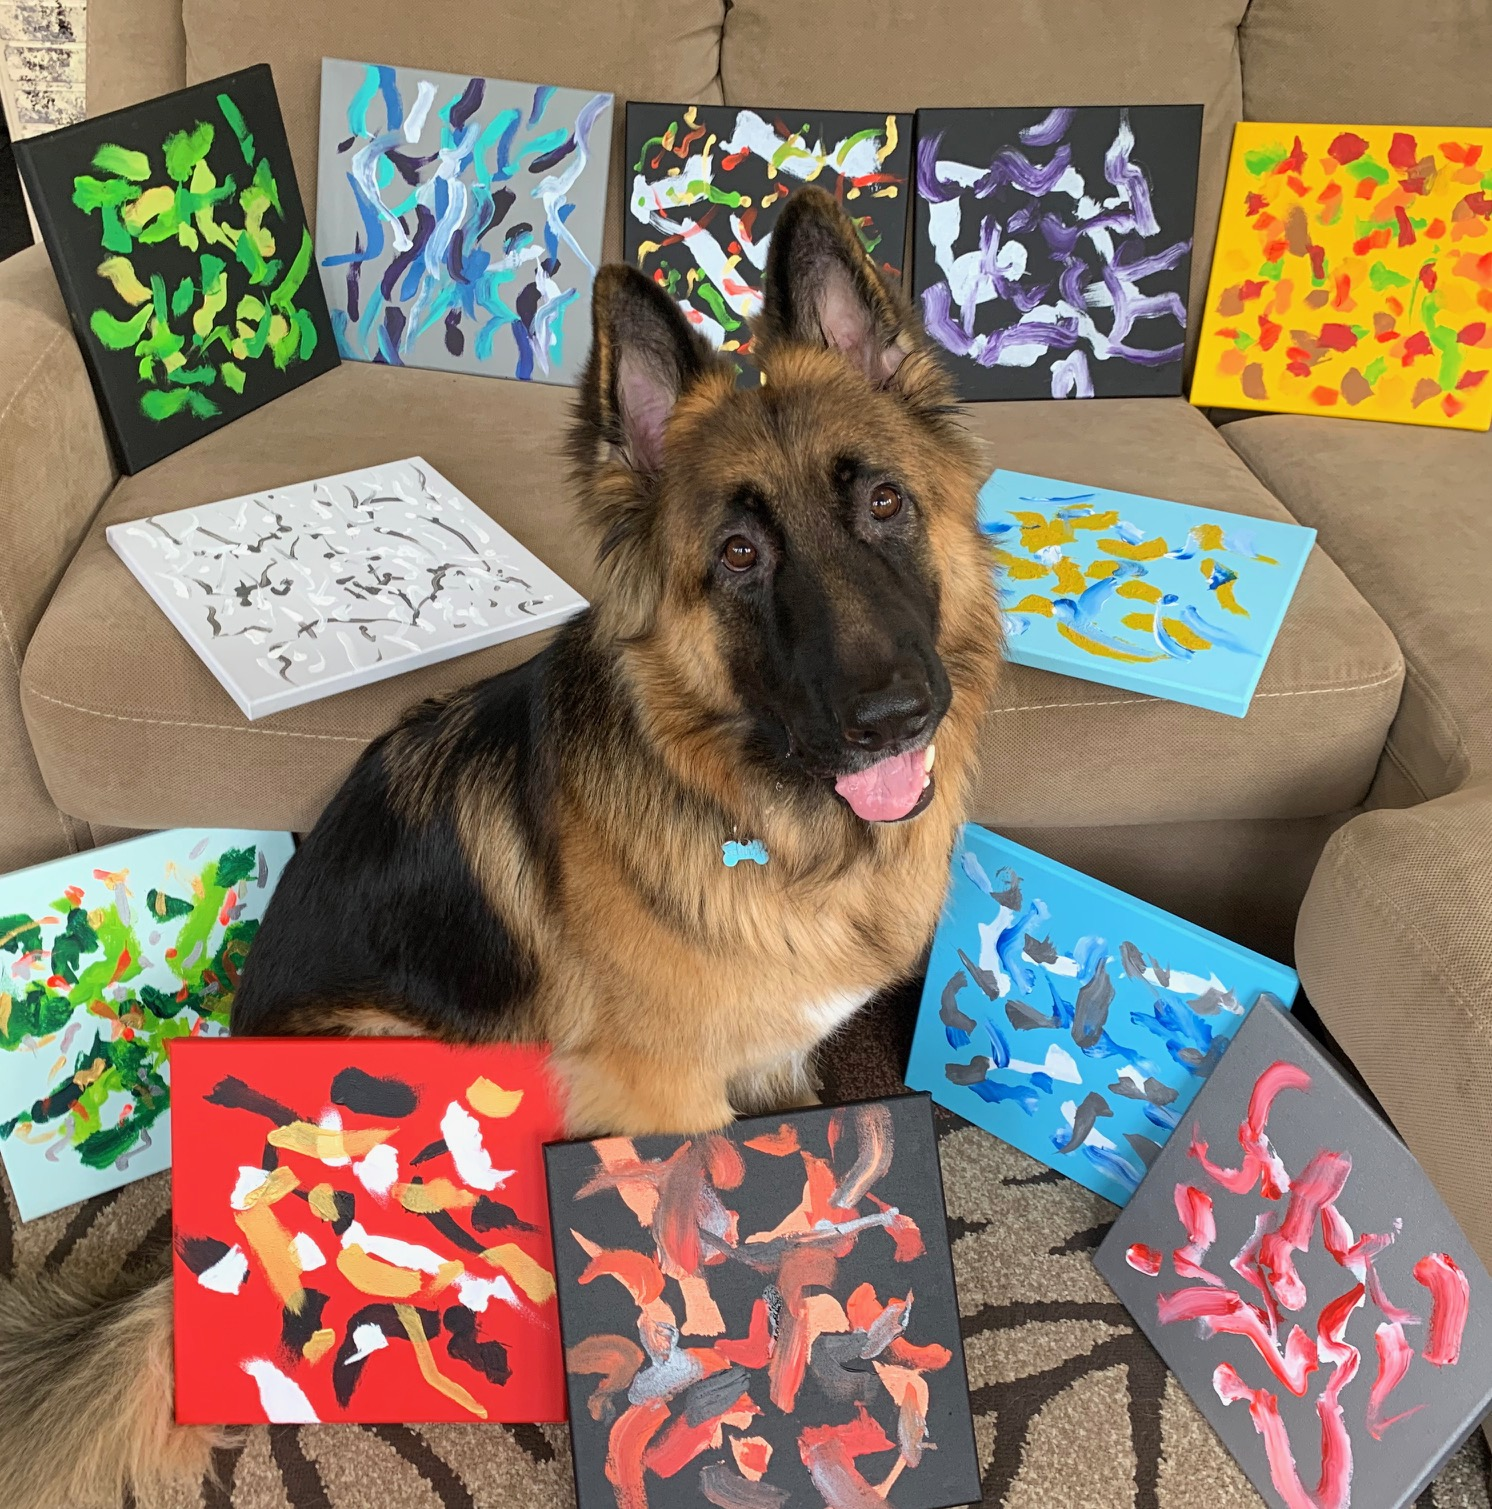 Gift baskets help amputee pets